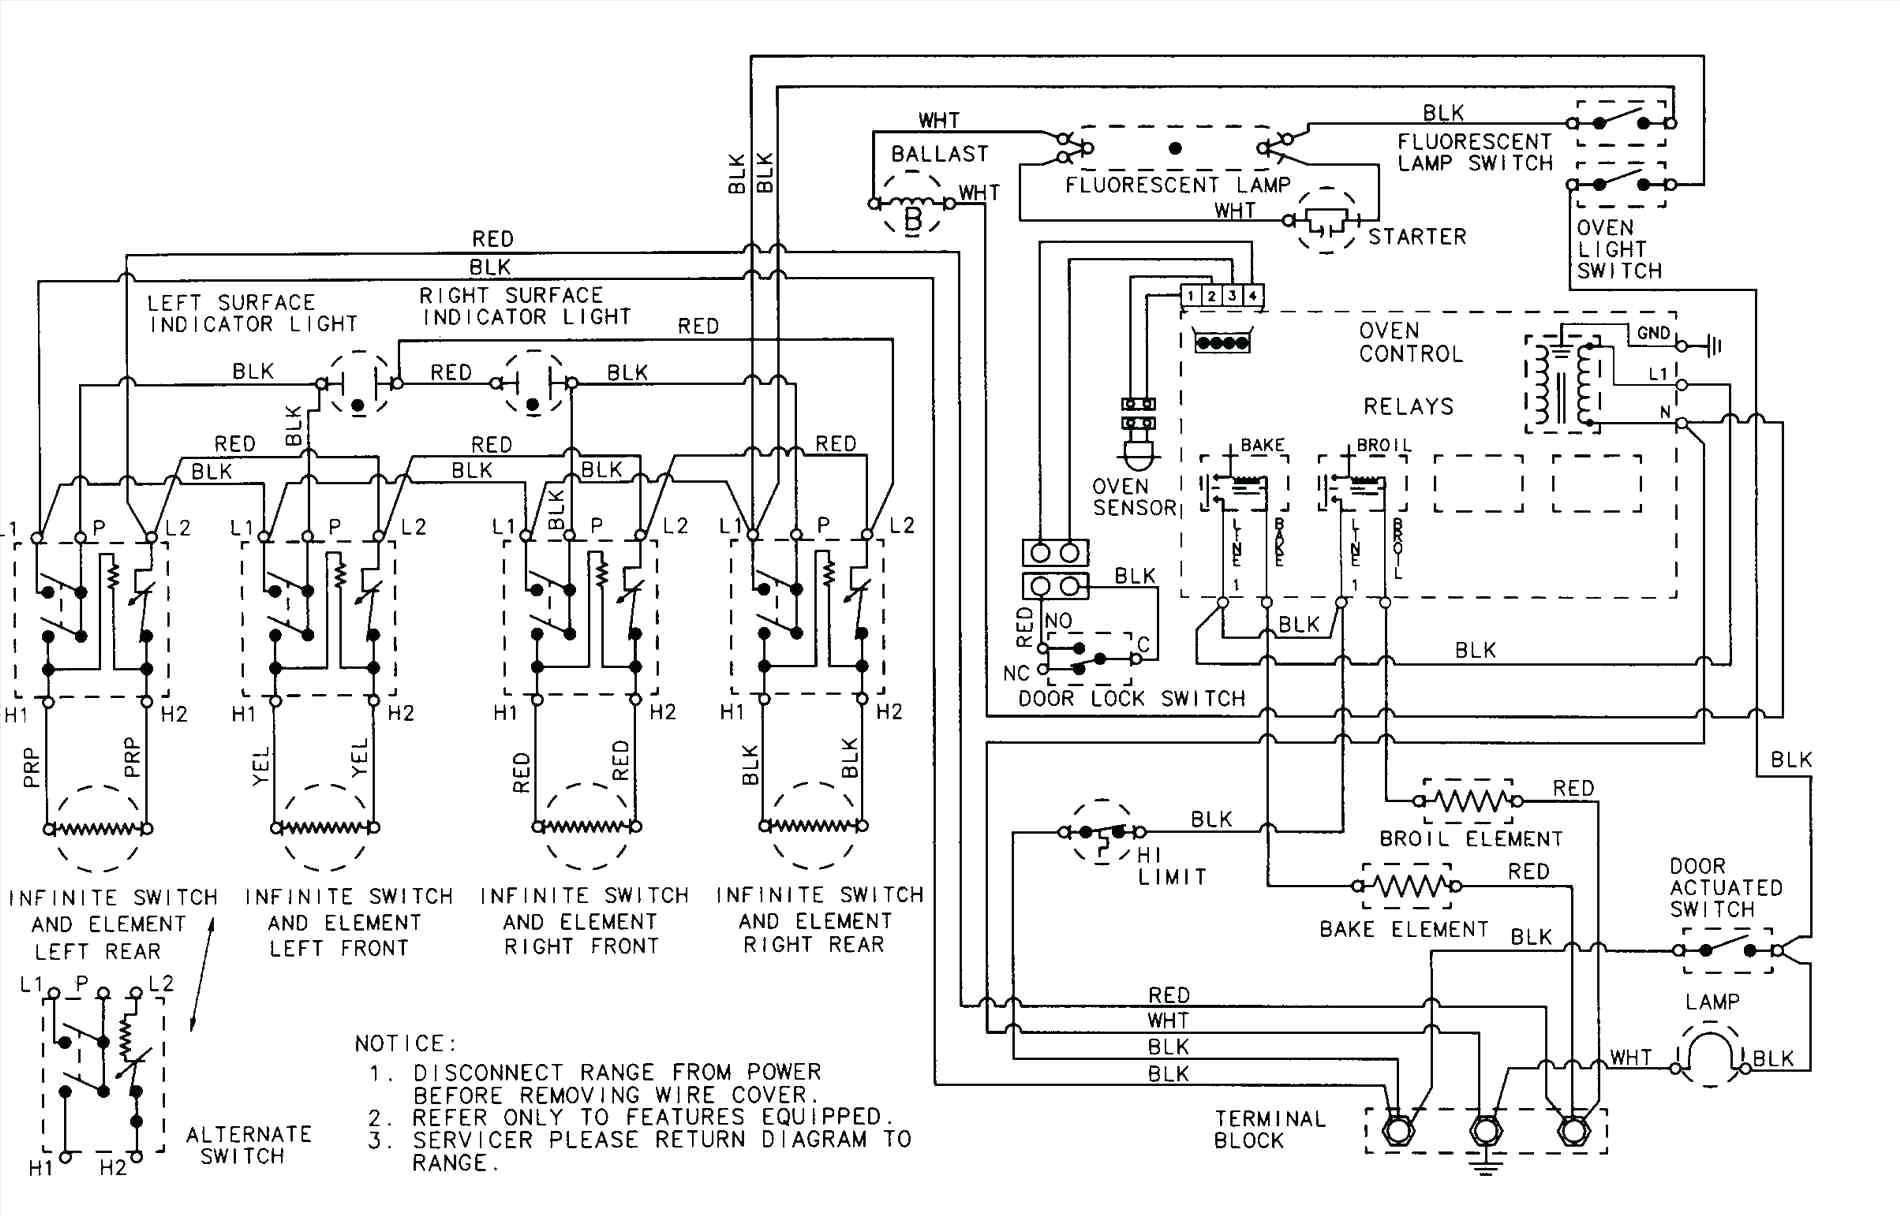 ge dryer start switch wiring diagram Collection-Ge Dryer Start Switch Wiring Diagram Fresh Ge Dryer Timer Wiring Diagram Example Electrical Wiring Diagram 20-r